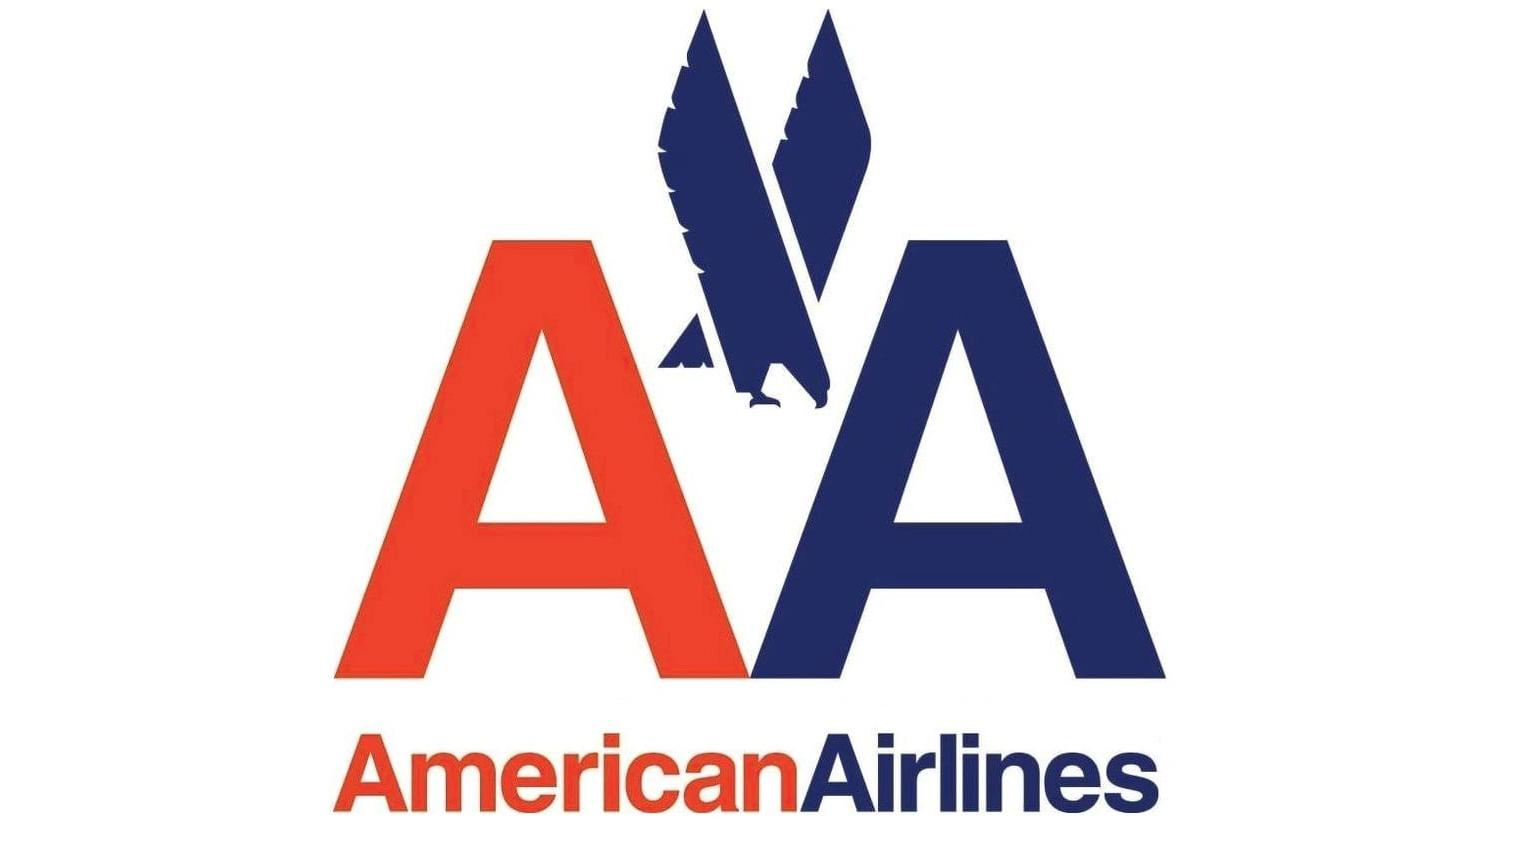 American Airlines logo by Massimo Vignelli